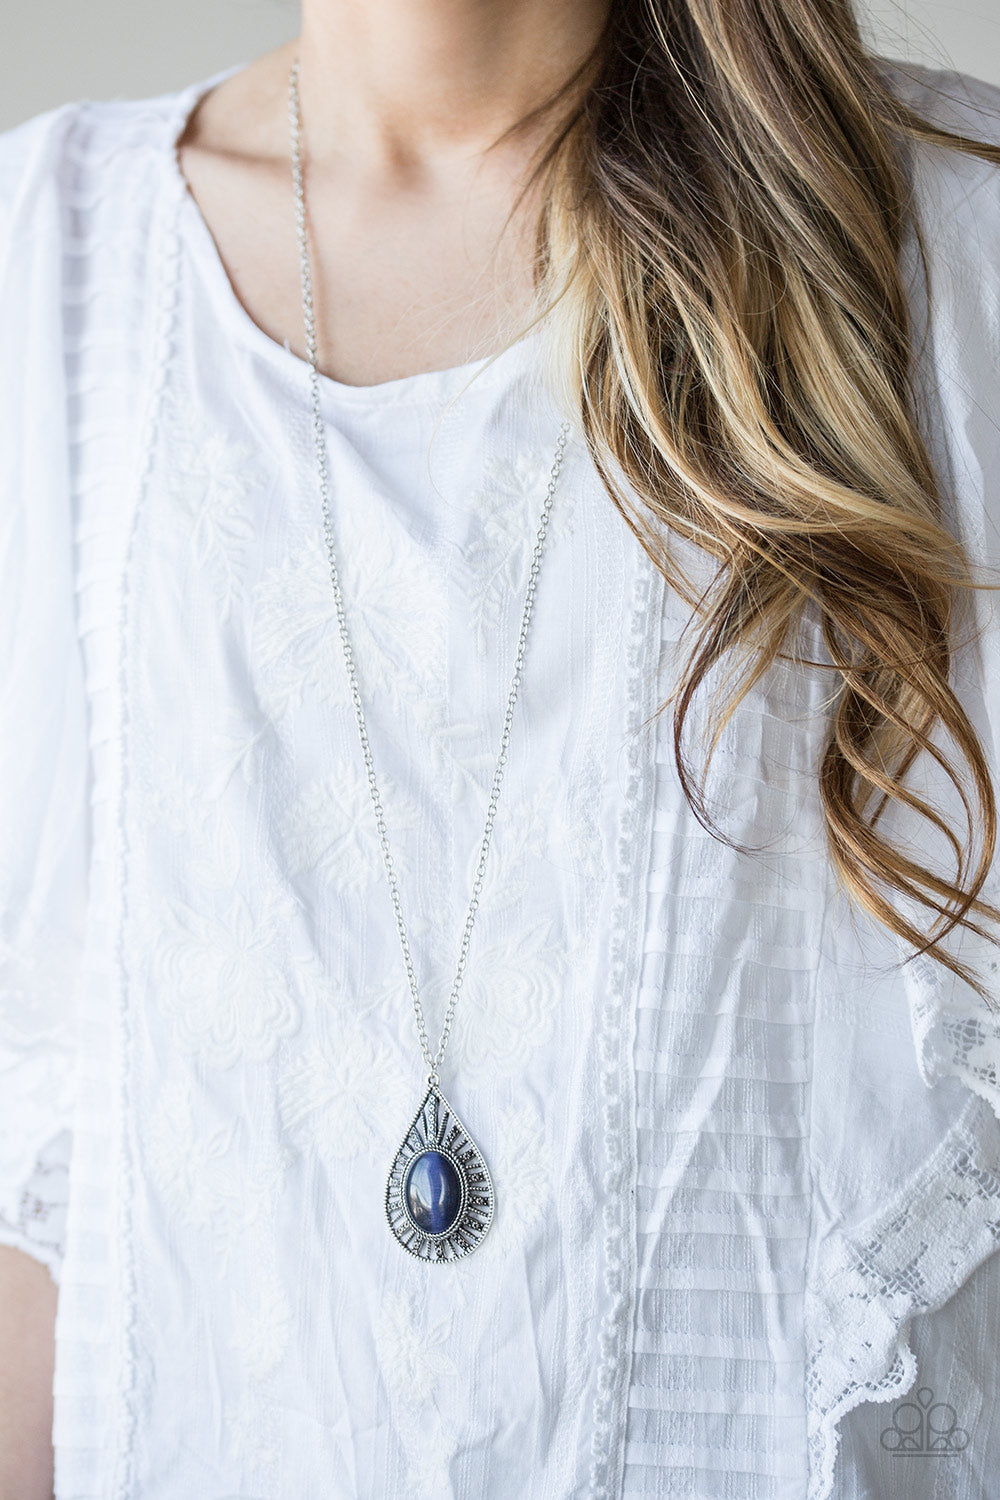 Total Tranqullity Blue Necklace